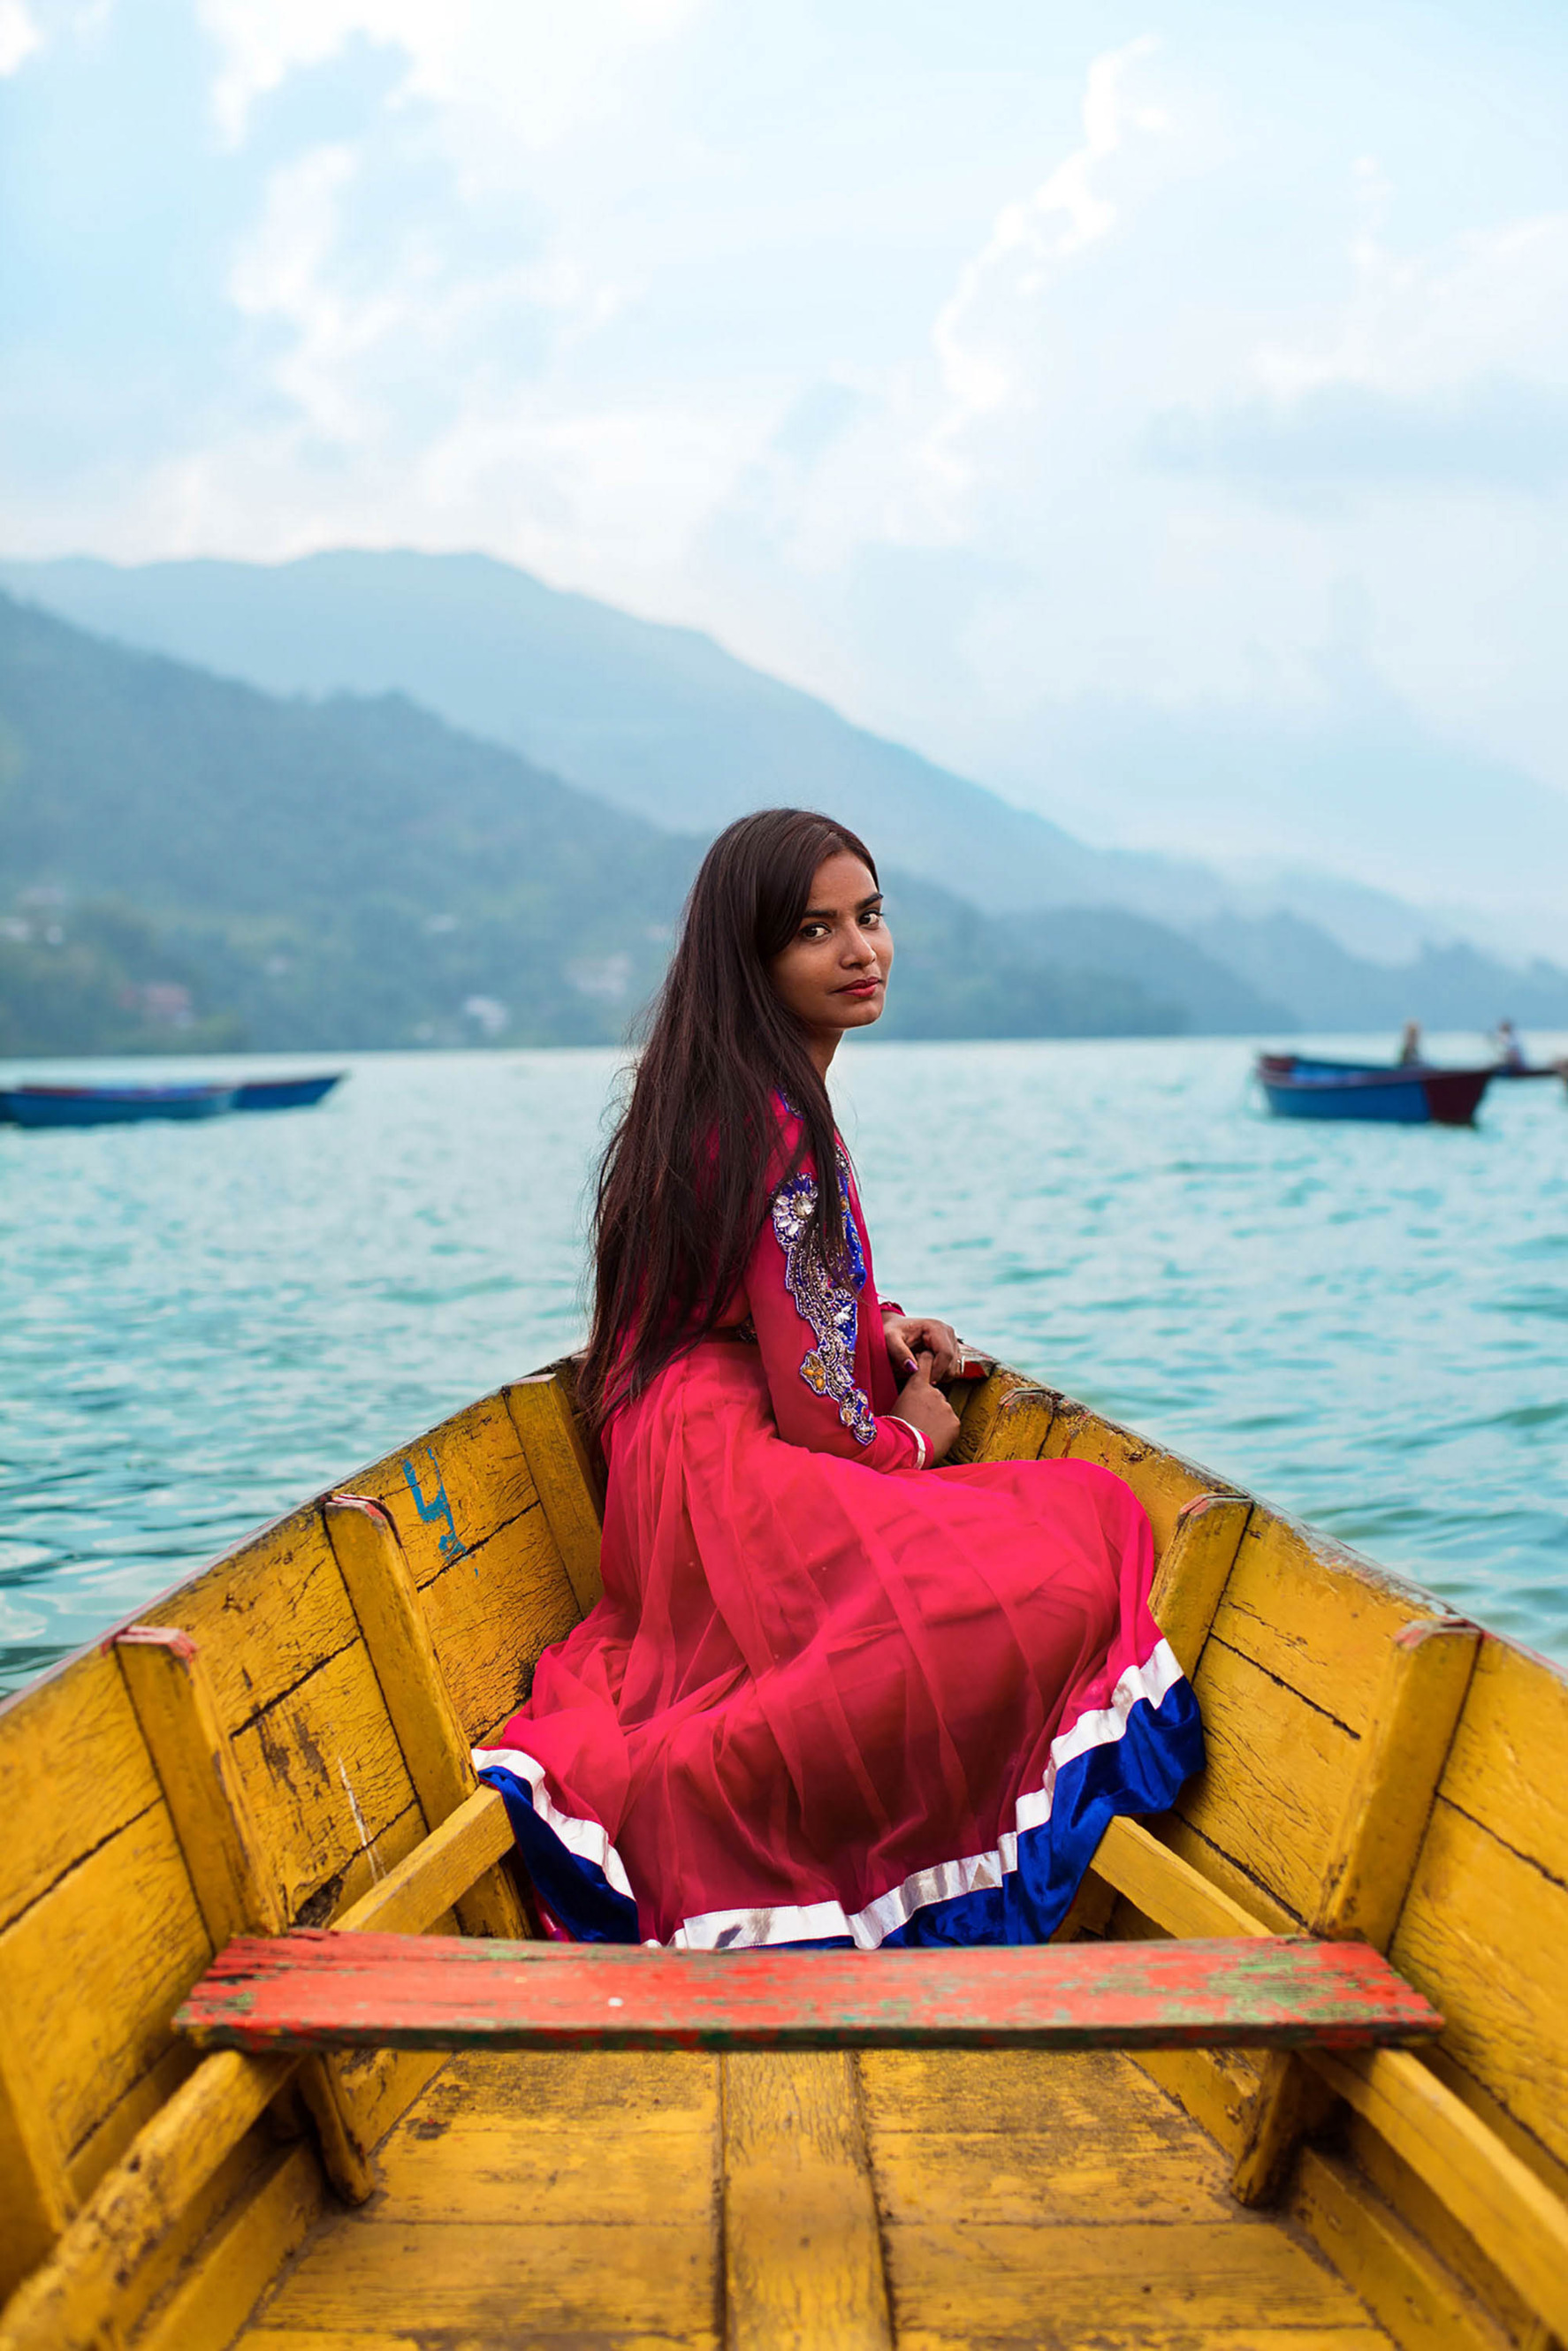 Name not provided Pokhara, Nepal - The Atlas of Beauty - Women of the World in 500 Portraits Book by Mihaela Noroc - women empowerment